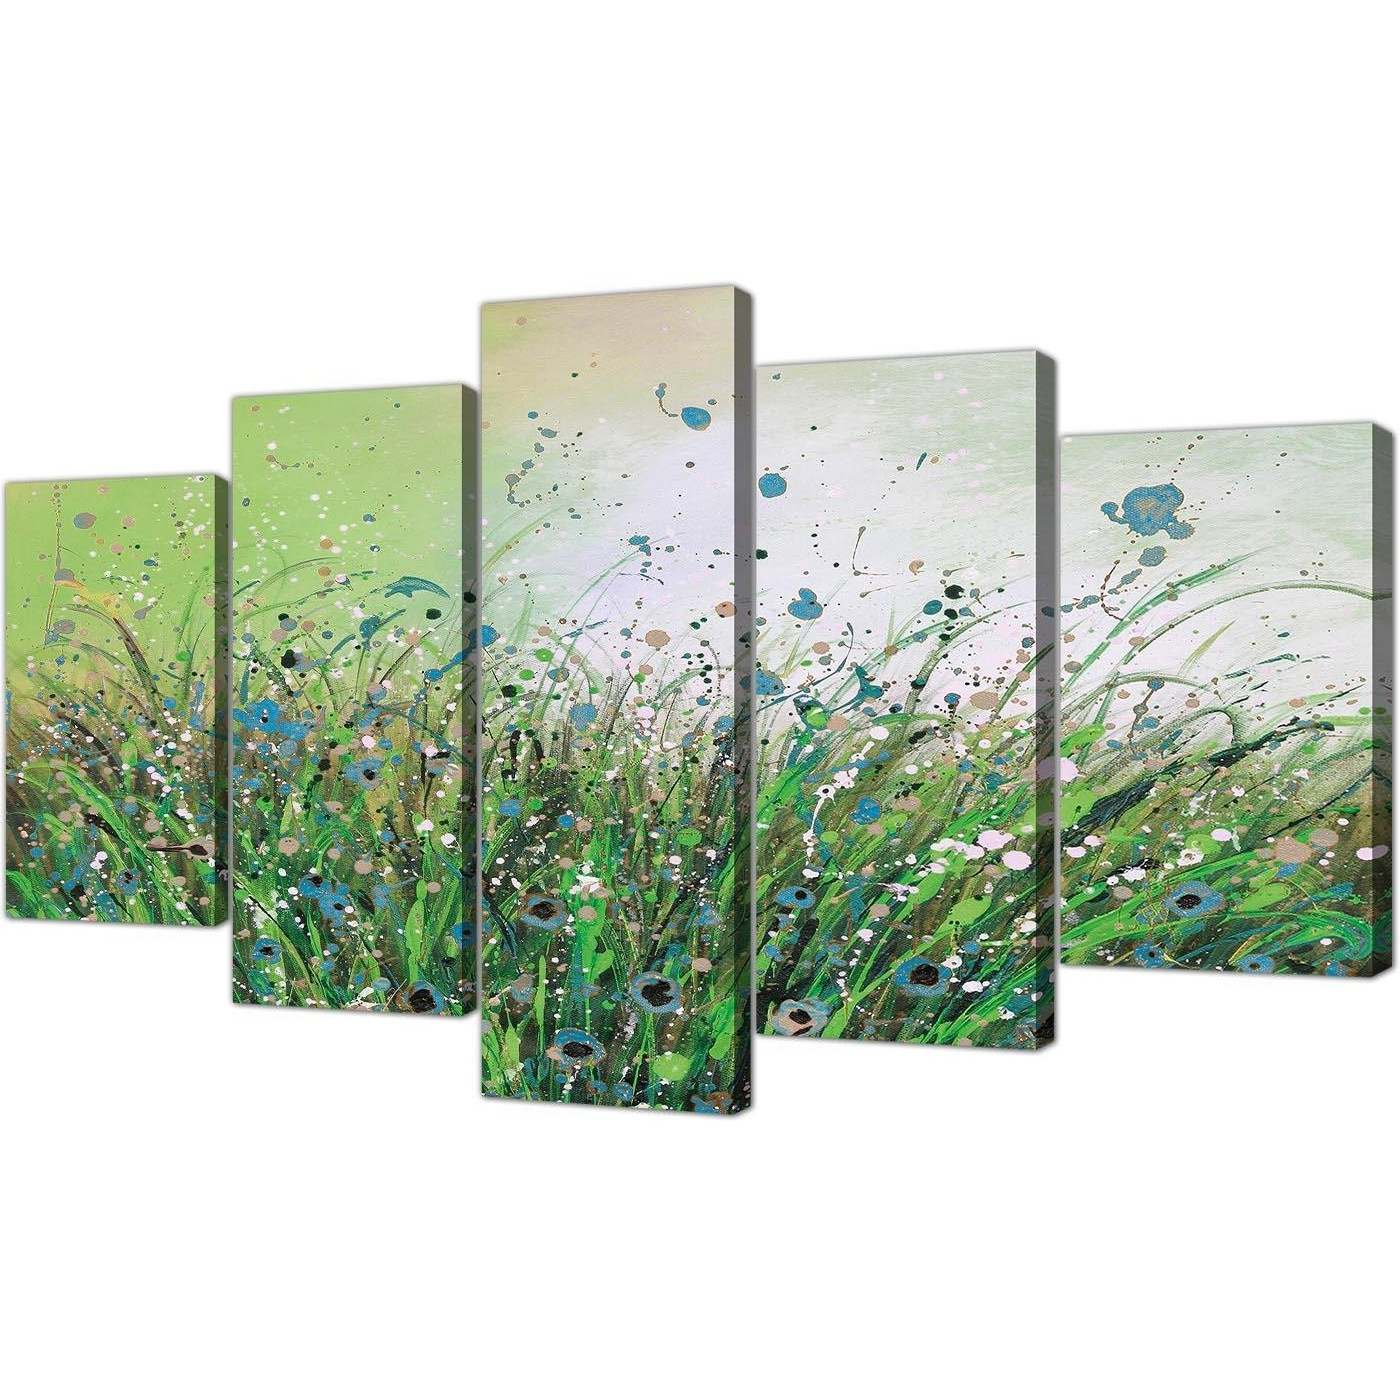 Popular Extra Large Floral Abstract Canvas Wall Art In Green With Large Canvas Wall Art (View 2 of 15)